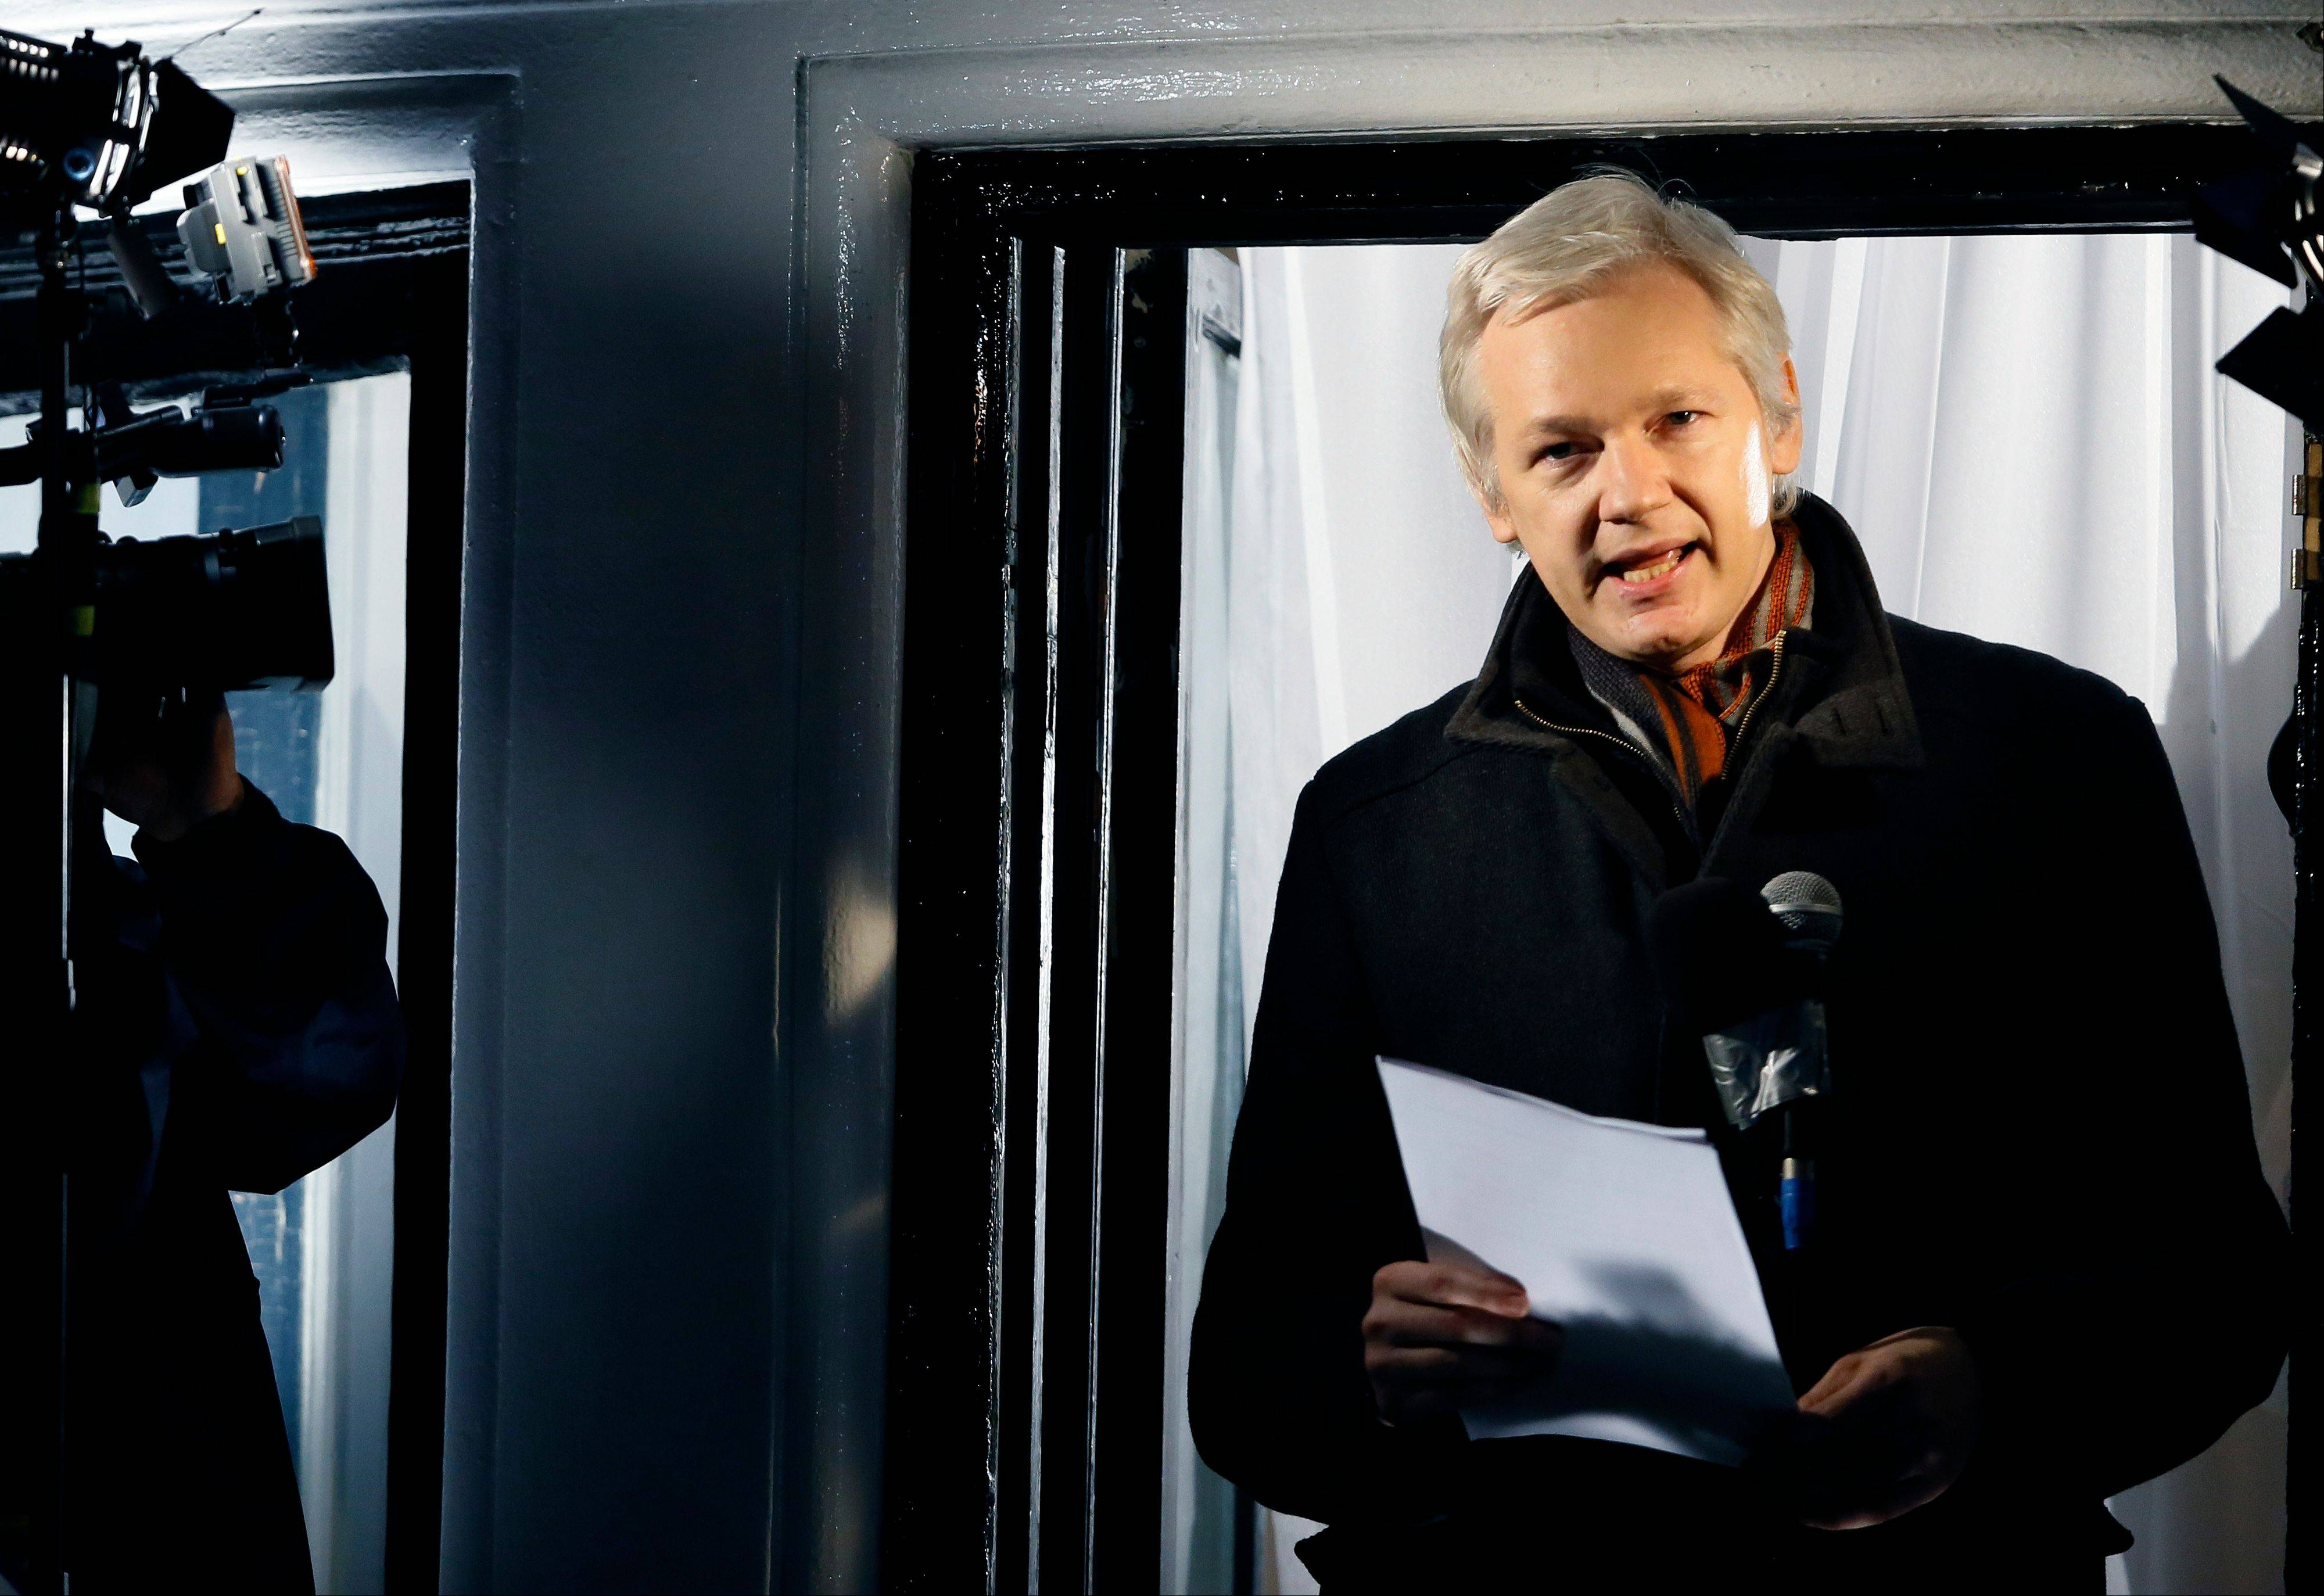 Julian Assange, founder of WikiLeaks, has asked Swedish police to investigate what happened to a suitcase he suspects was stolen from him when he traveled from Sweden to Germany in 2010.